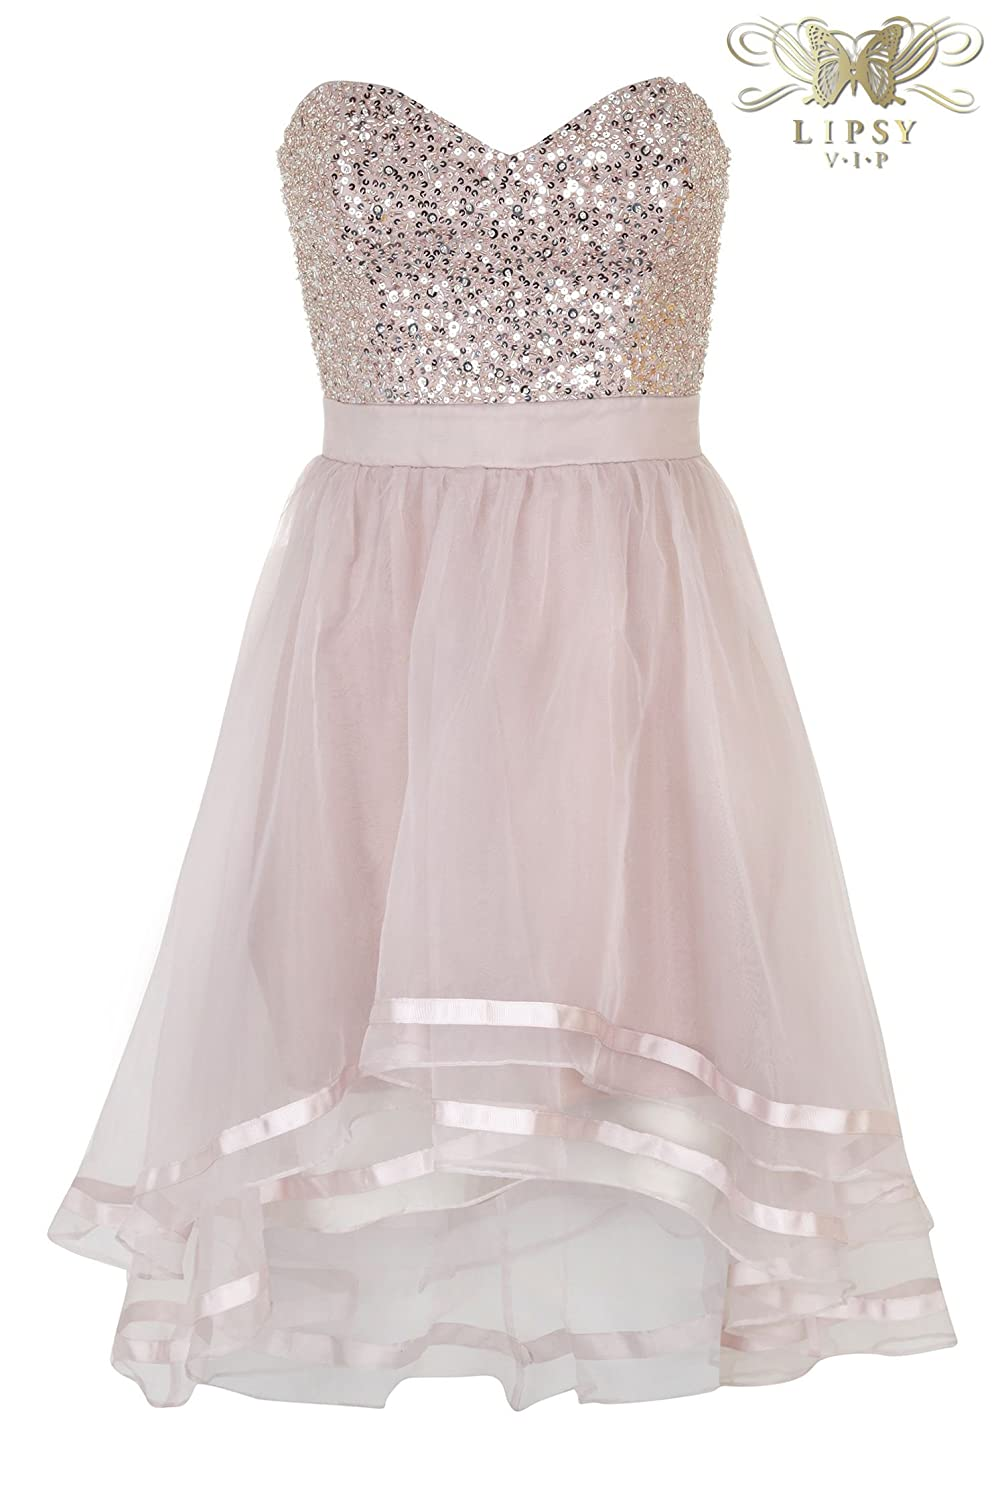 Lipsy VIP Beaded & Sequin Embellished Bust Organza Dipped Hem Prom Dress in Hush Violet (UK 10): Amazon.co.uk: Clothing